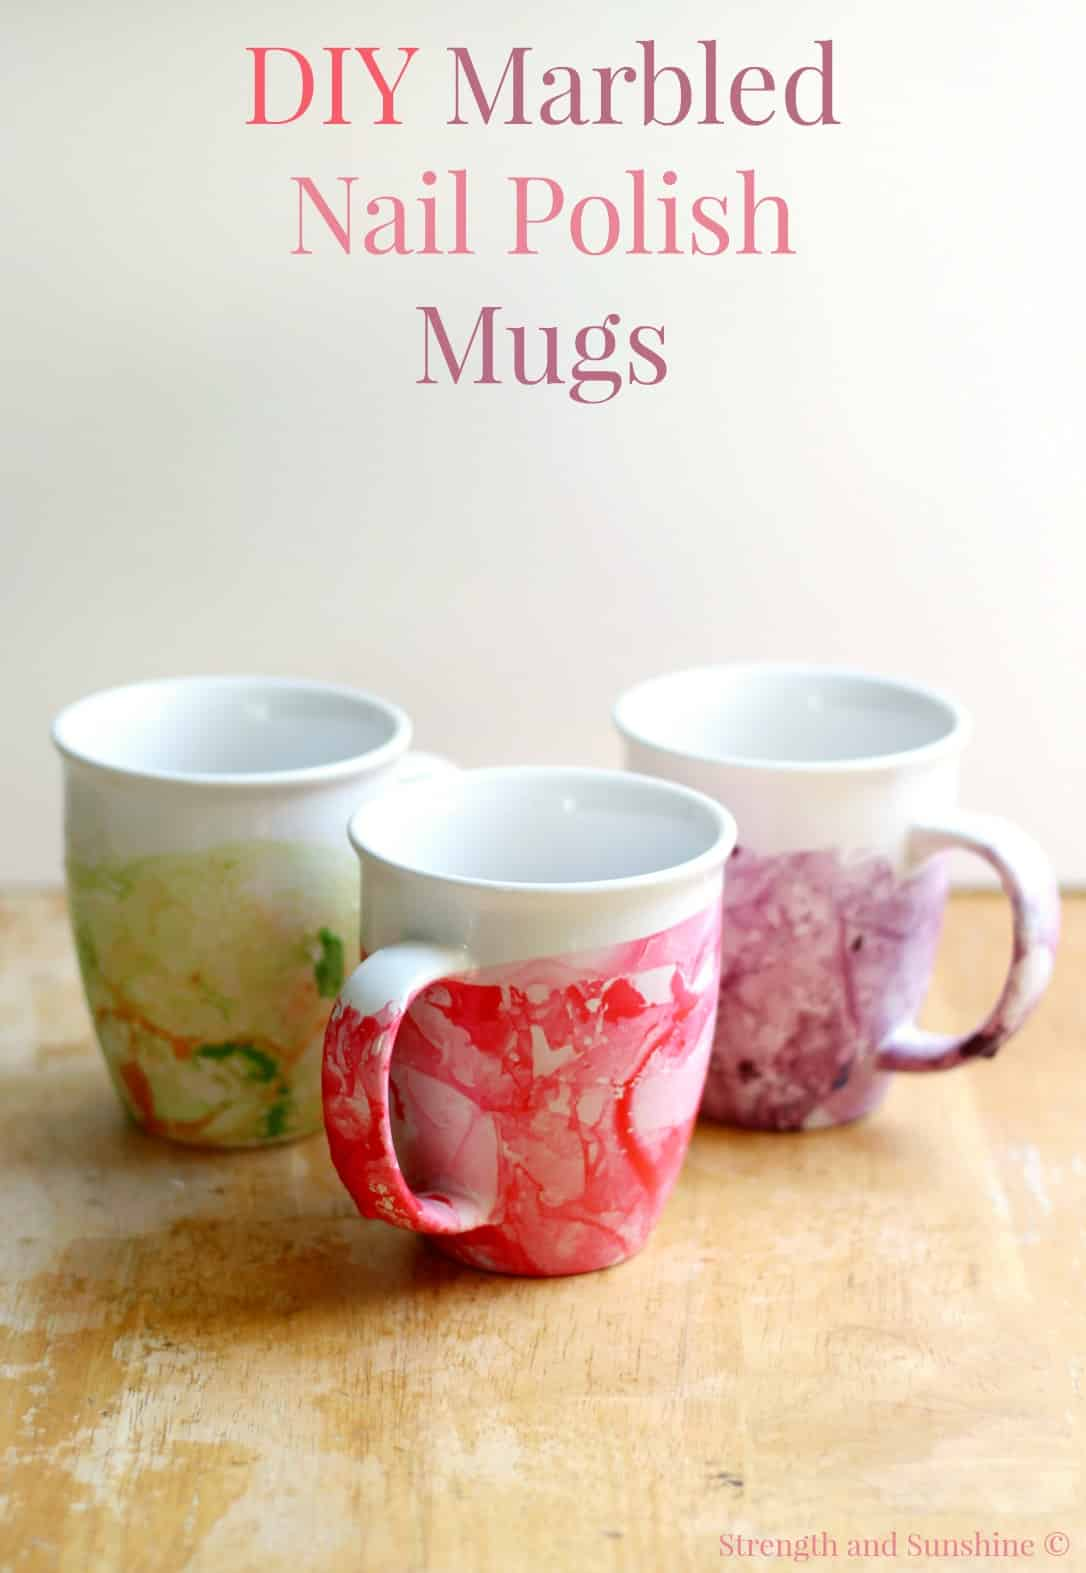 Marbled Nail Polish Mugs by Strength and Sunshine